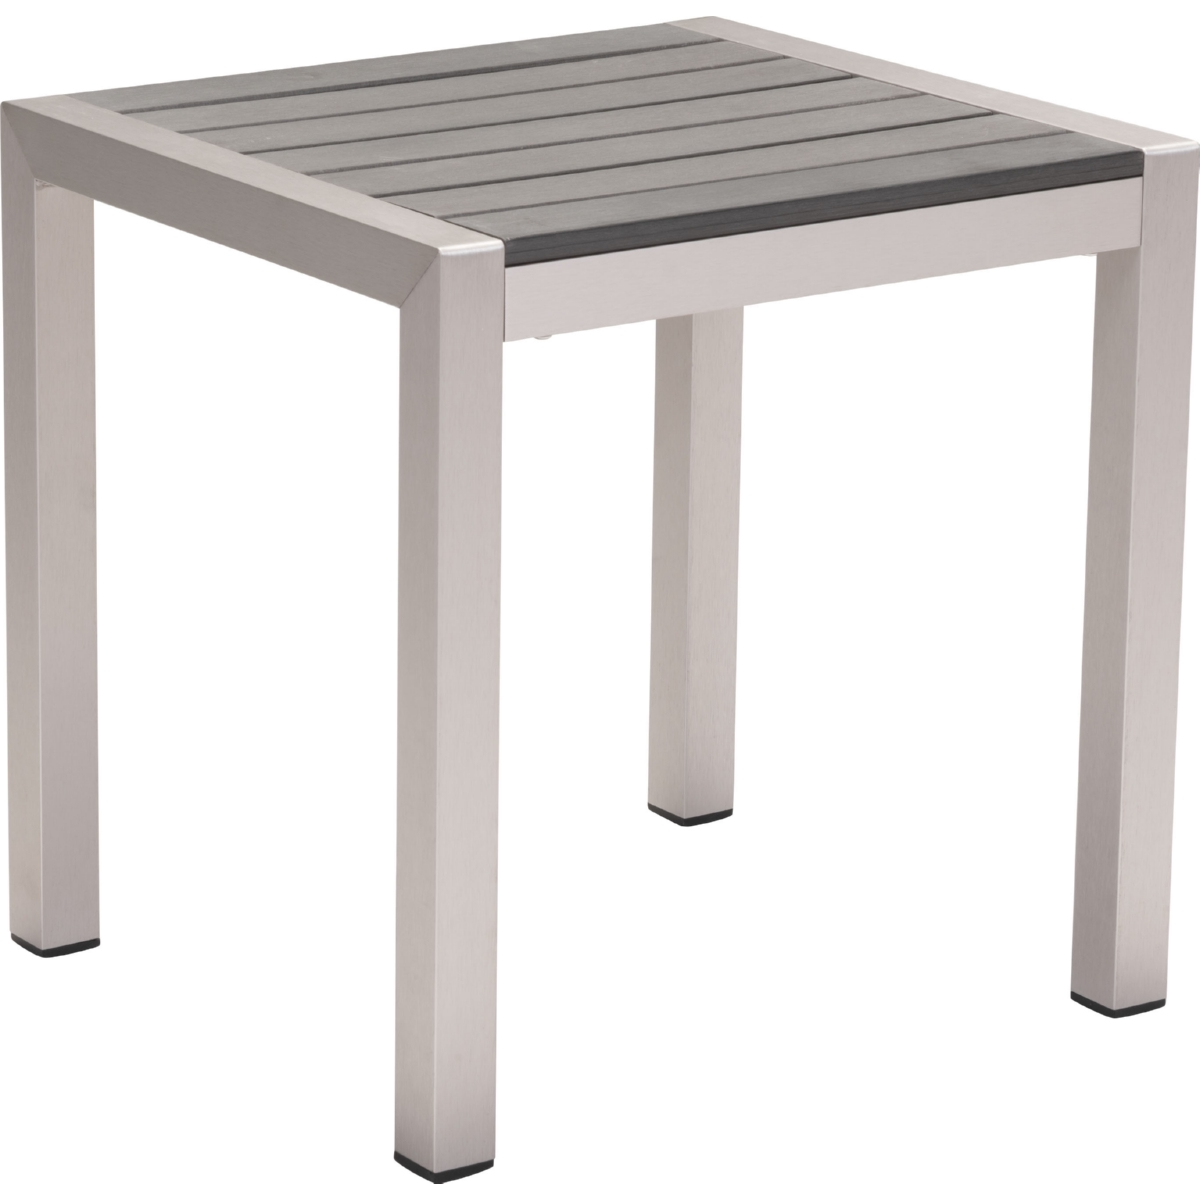 outdoor side table w slatted polywood top on brushed aluminum